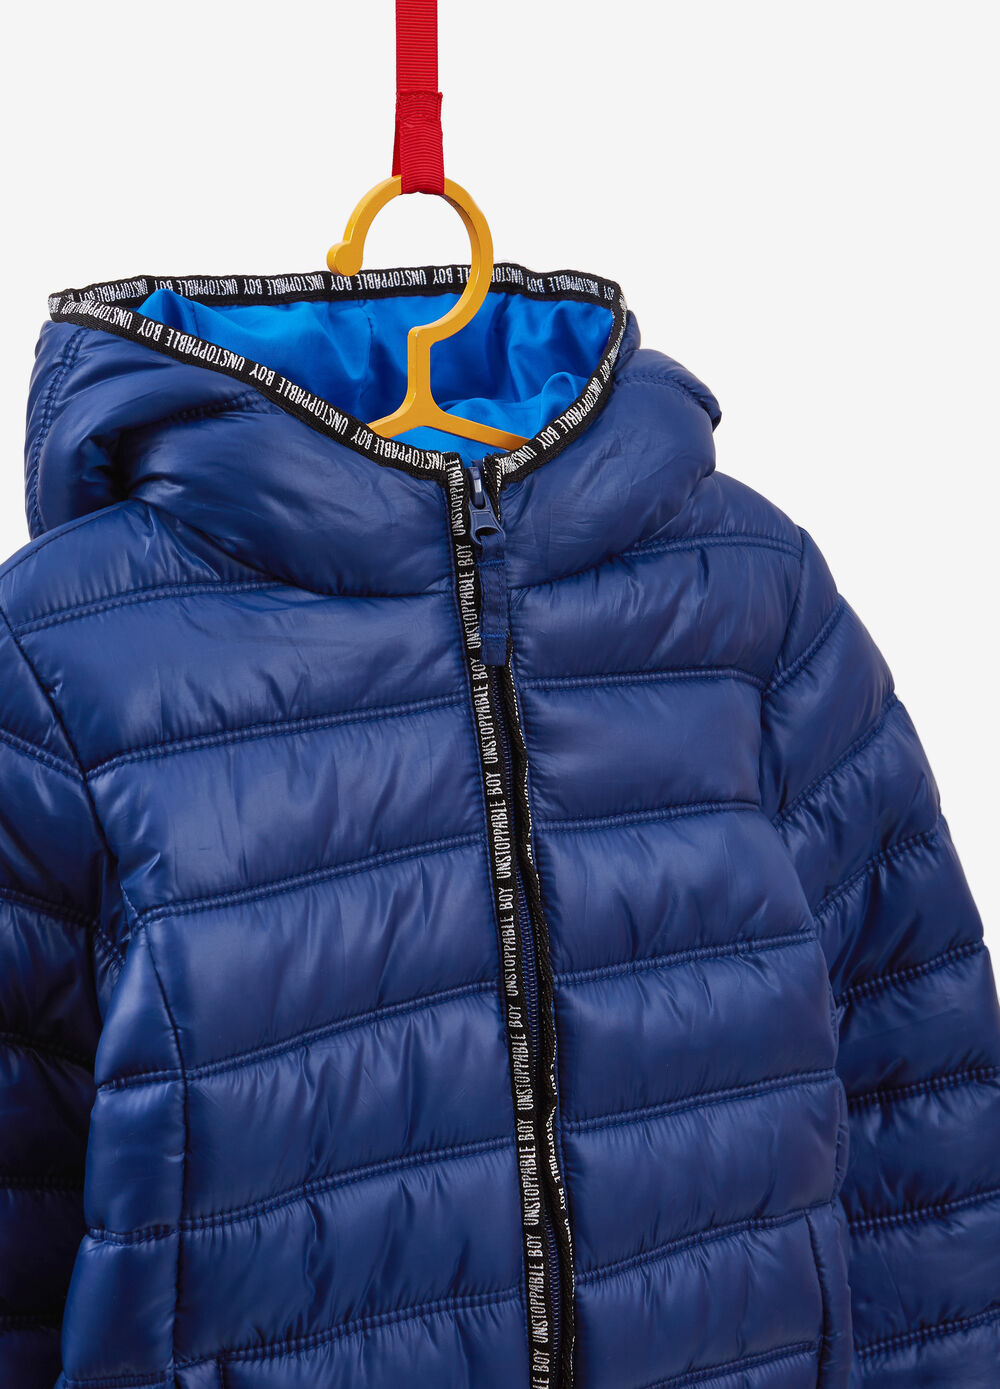 Padded jacket with printed lettering